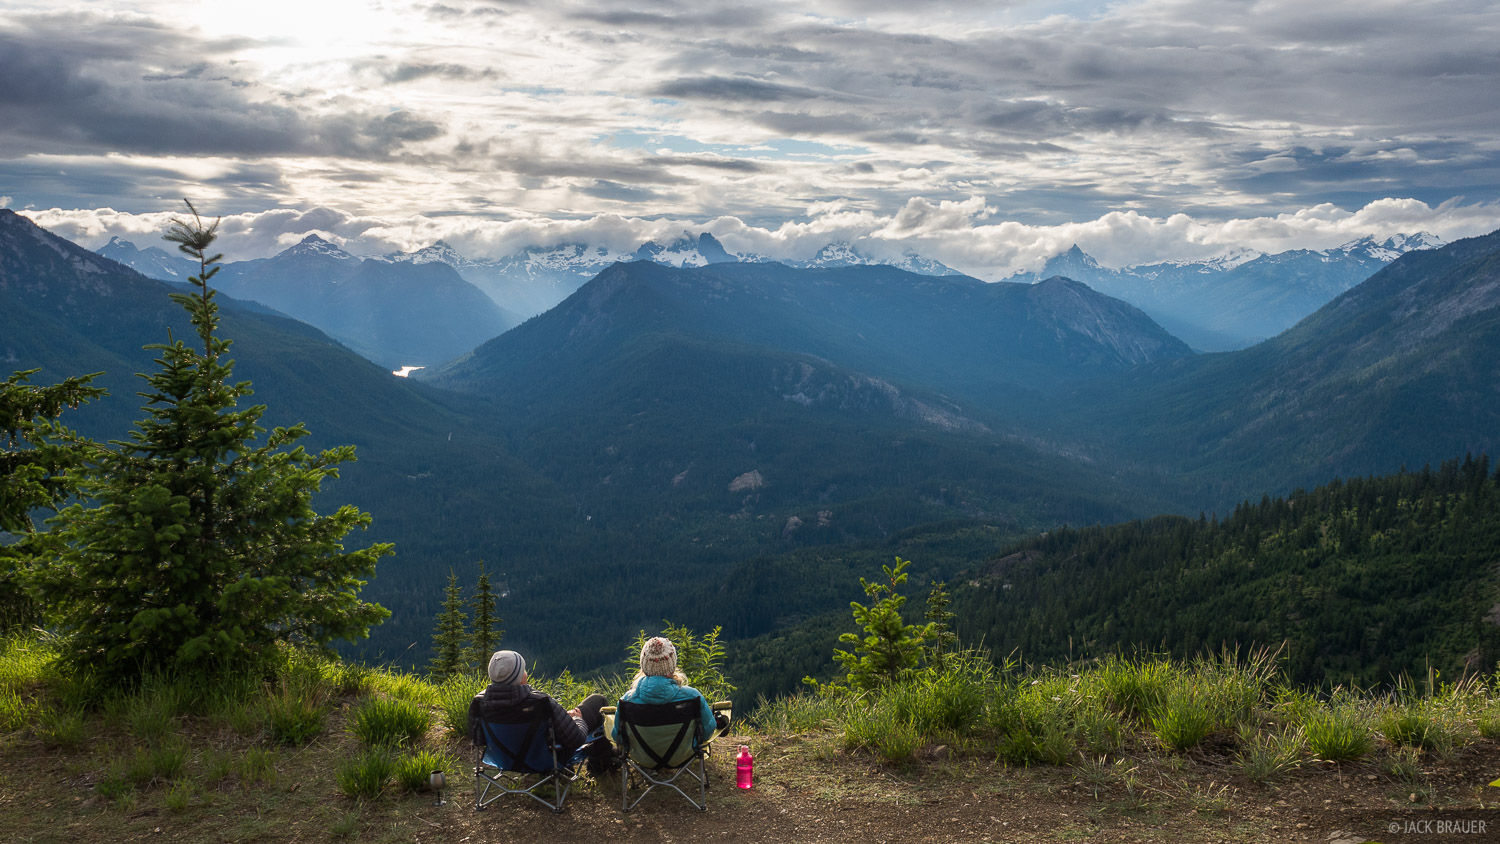 Before departing on a 5-day trek in the Alpine Lakes Wilderness in Washington, we drove up a long switchbacking forest road above...